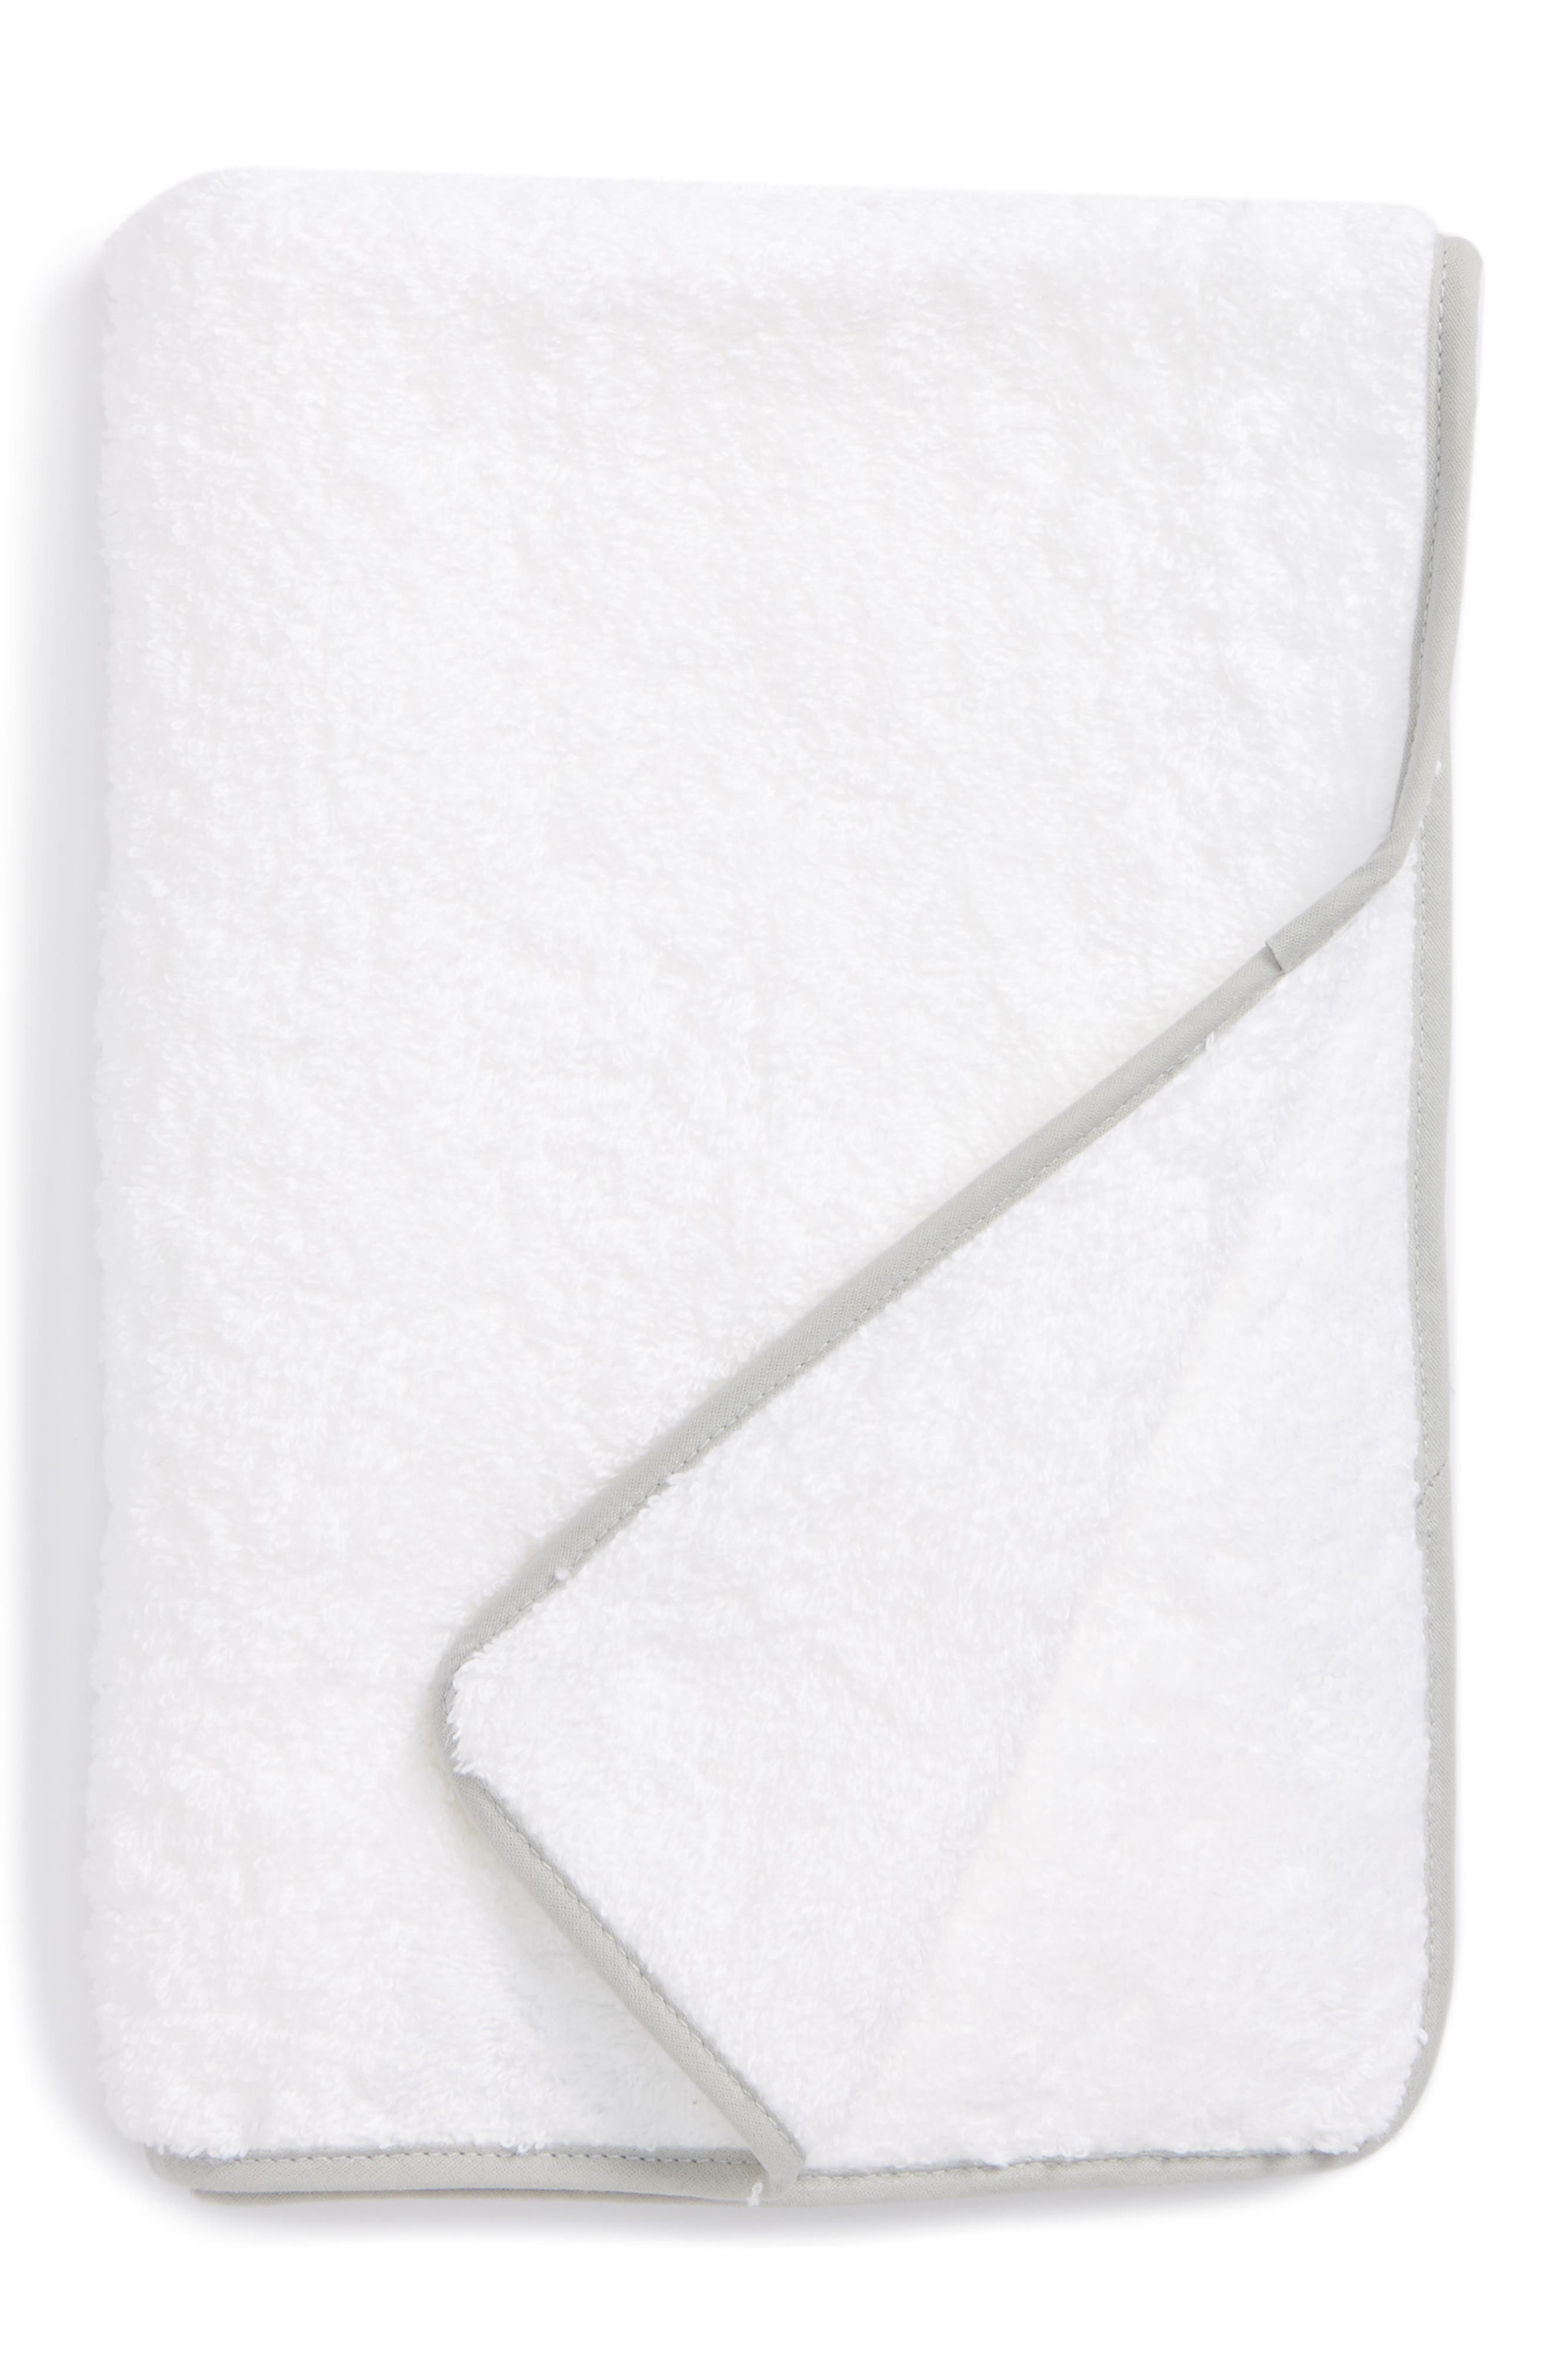 Cairo Guest Towel,                         Main,                         color, 040